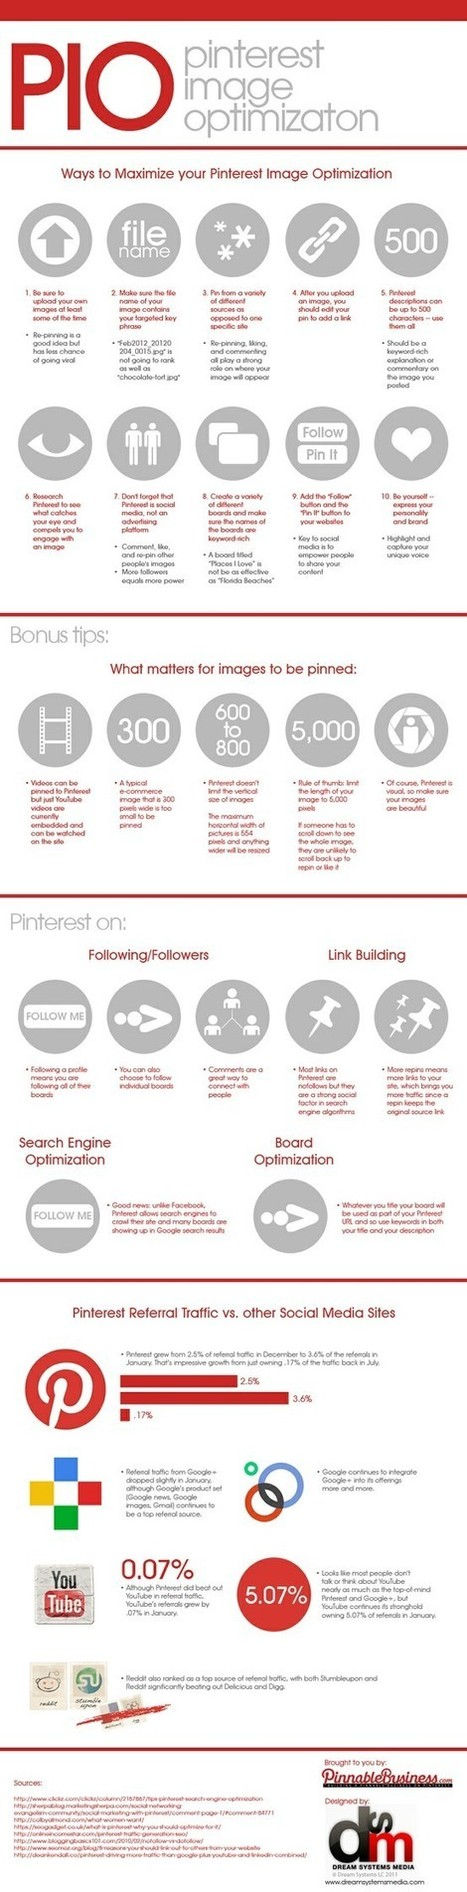 Pinterest help for marketing your small business | Small and Start-up Business Tips and Resources | Scoop.it